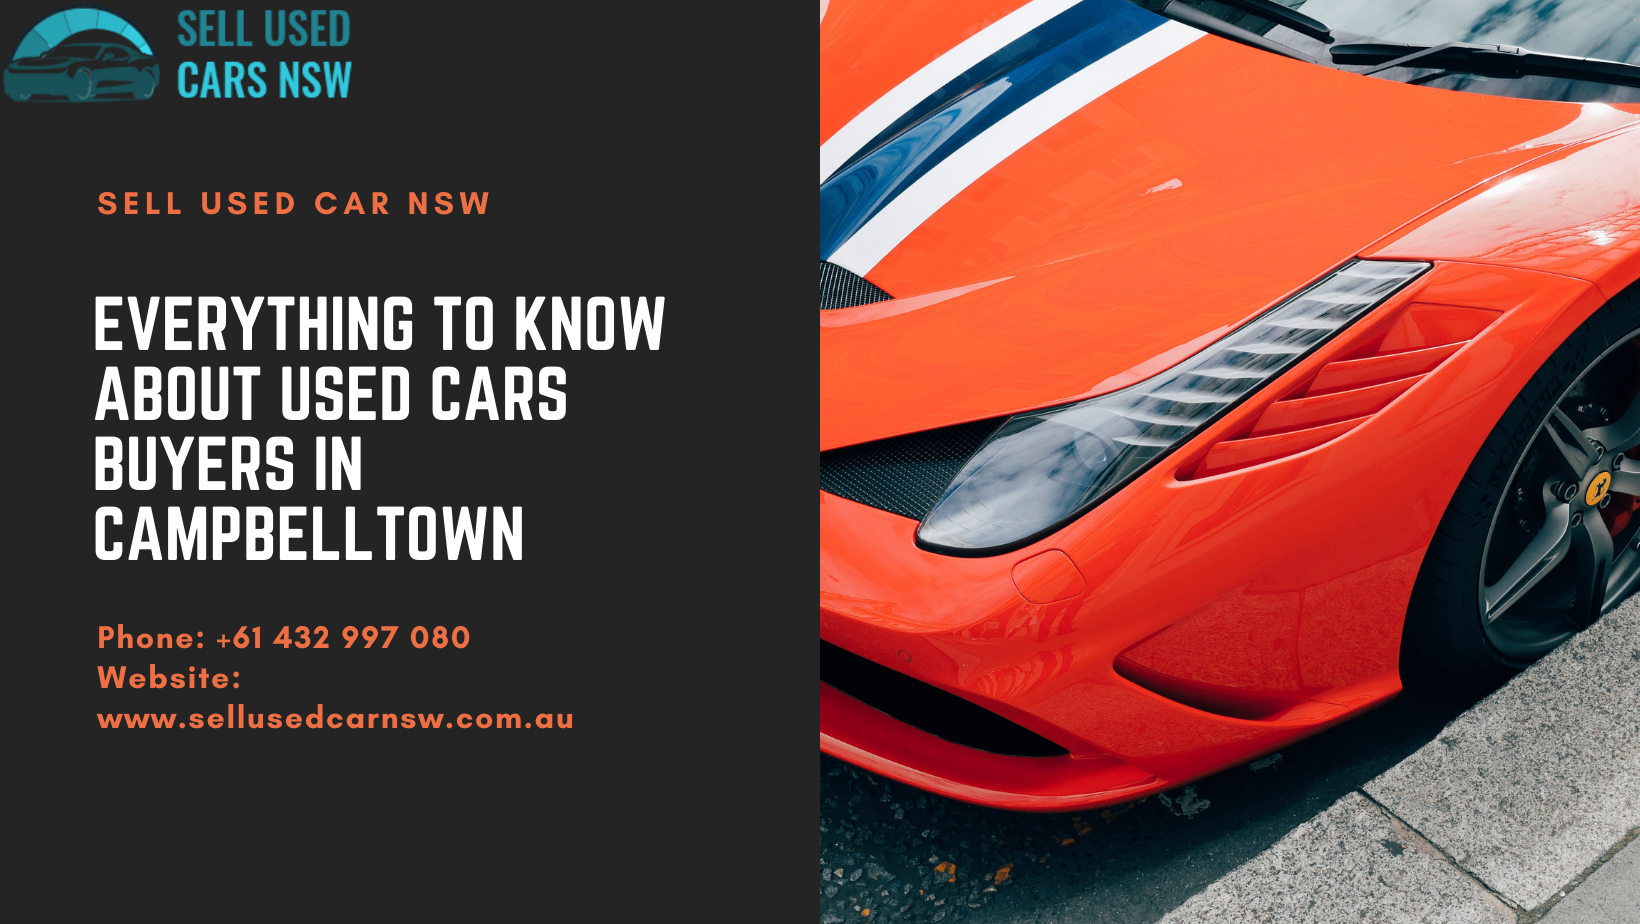 Everything To Know About Used Cars Buyers in Campbelltown